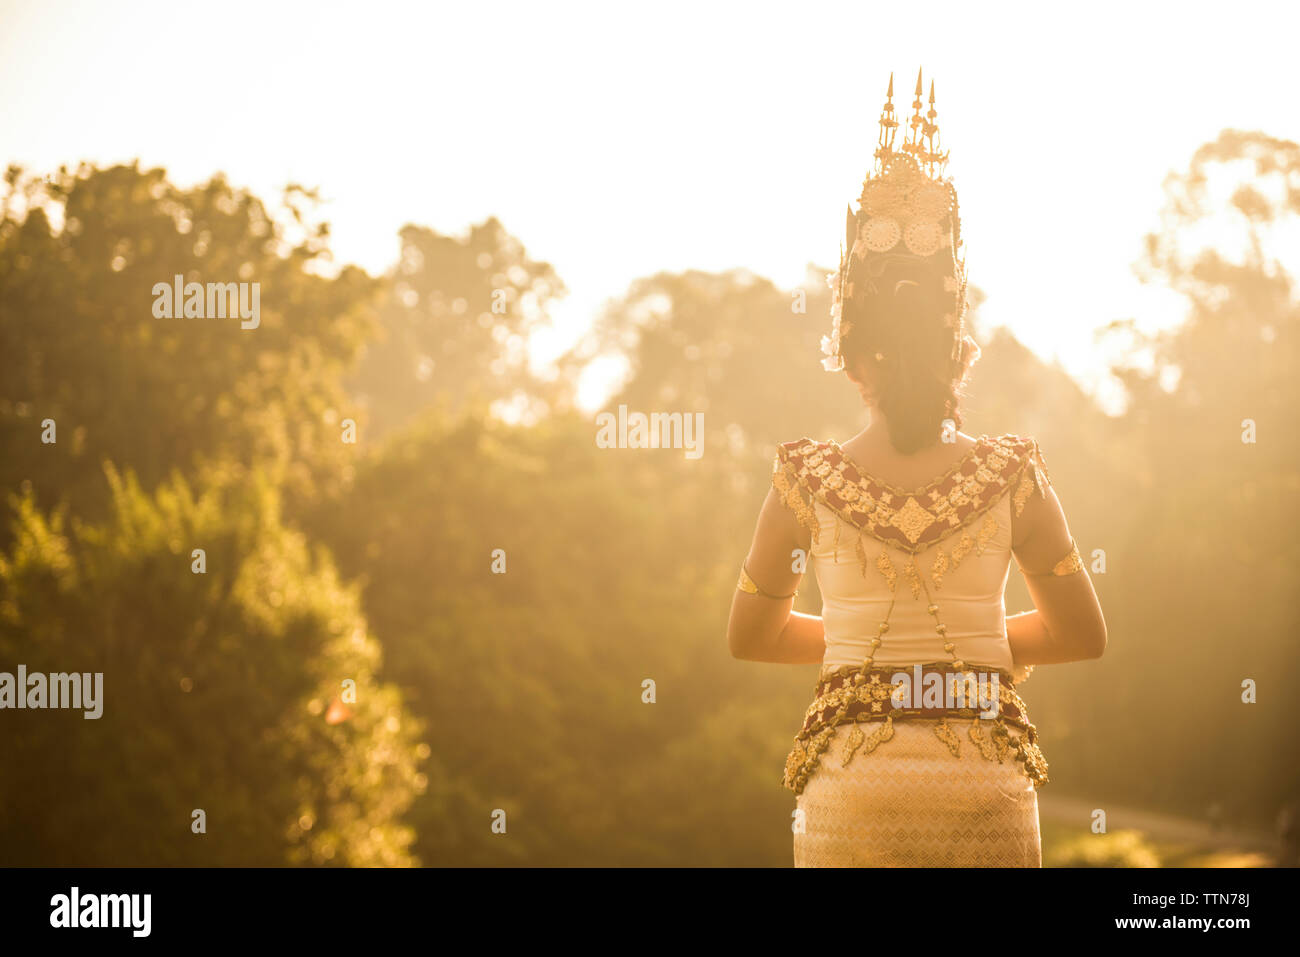 Rear view of woman in traditional clothing standing against trees - Stock Image